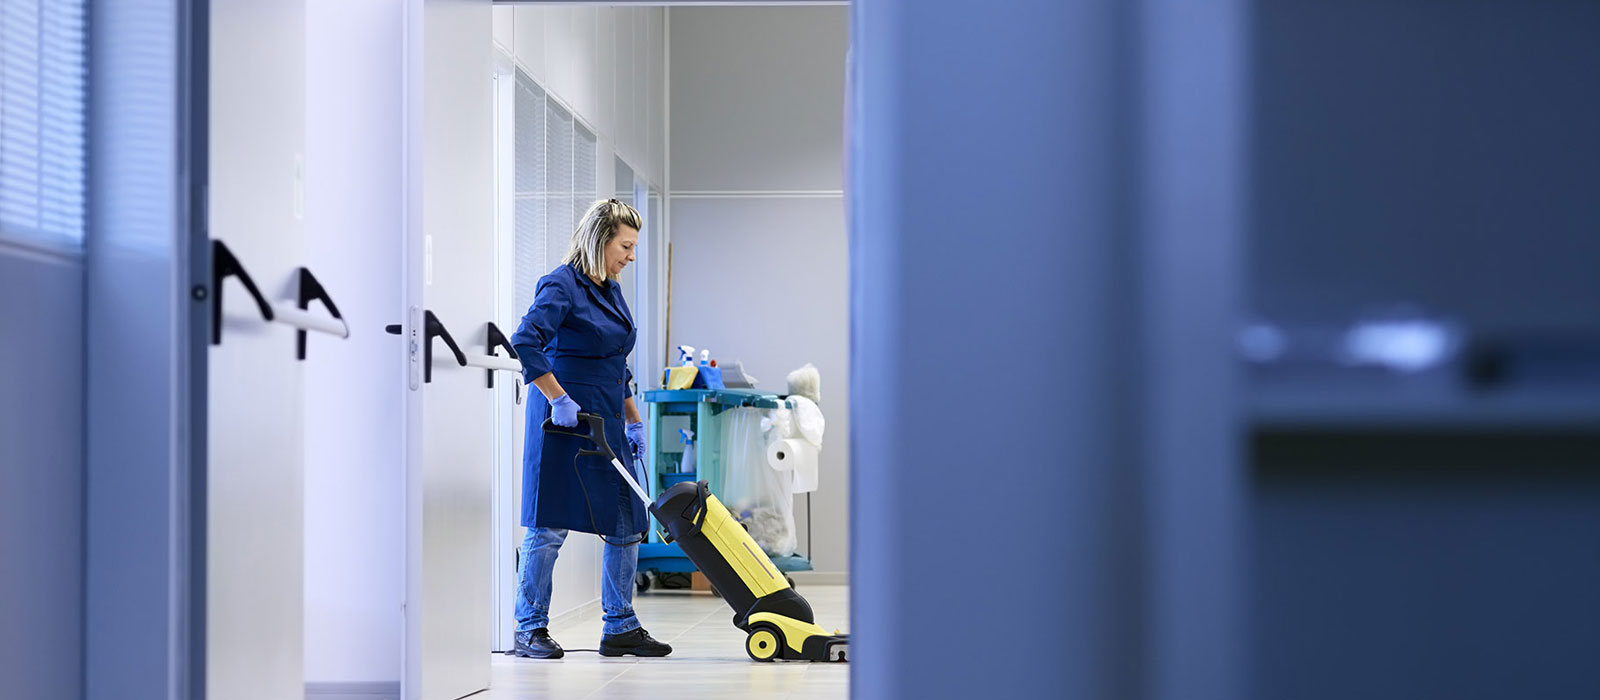 Pharmaceutical Cleaning Services